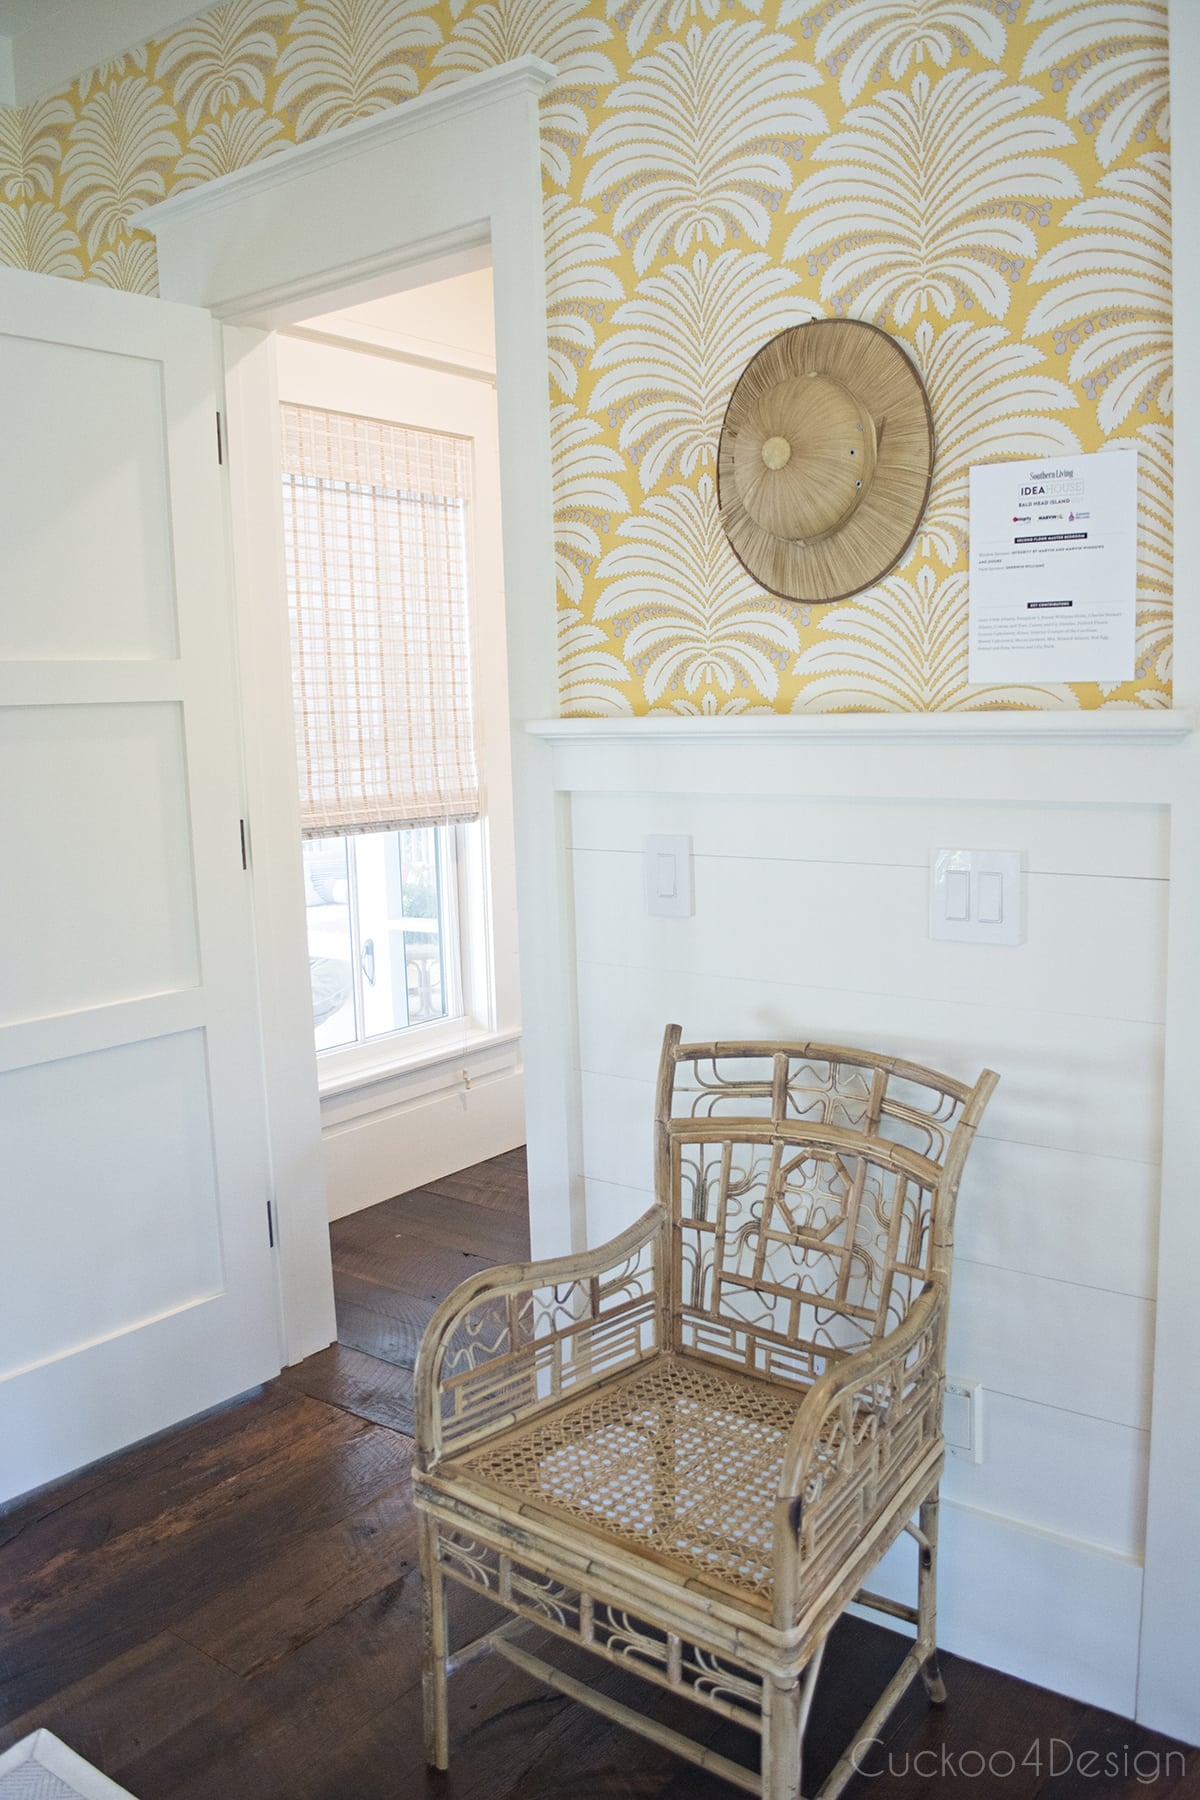 Hines Palmyra in yellow wallpaper and fabric and vintage rattan chair